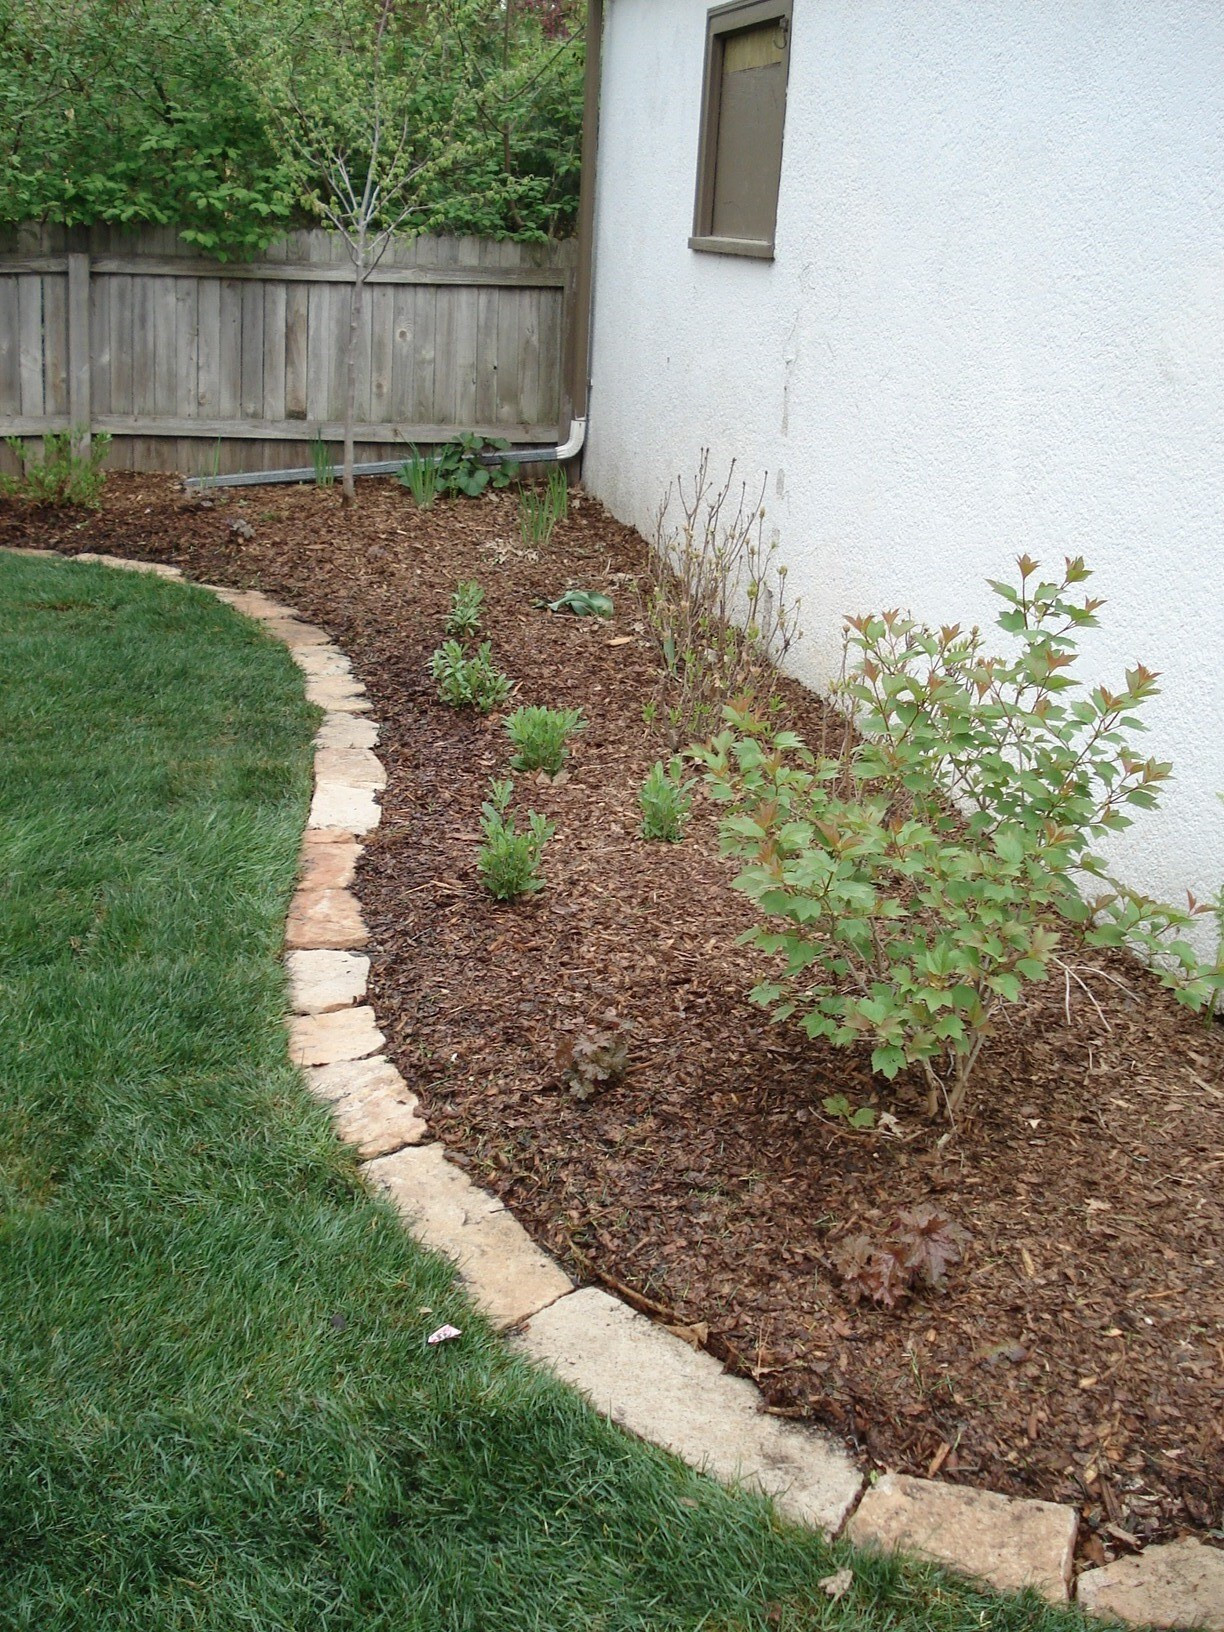 Best ideas about Landscape Edging Stones . Save or Pin Landscape 101 Now.